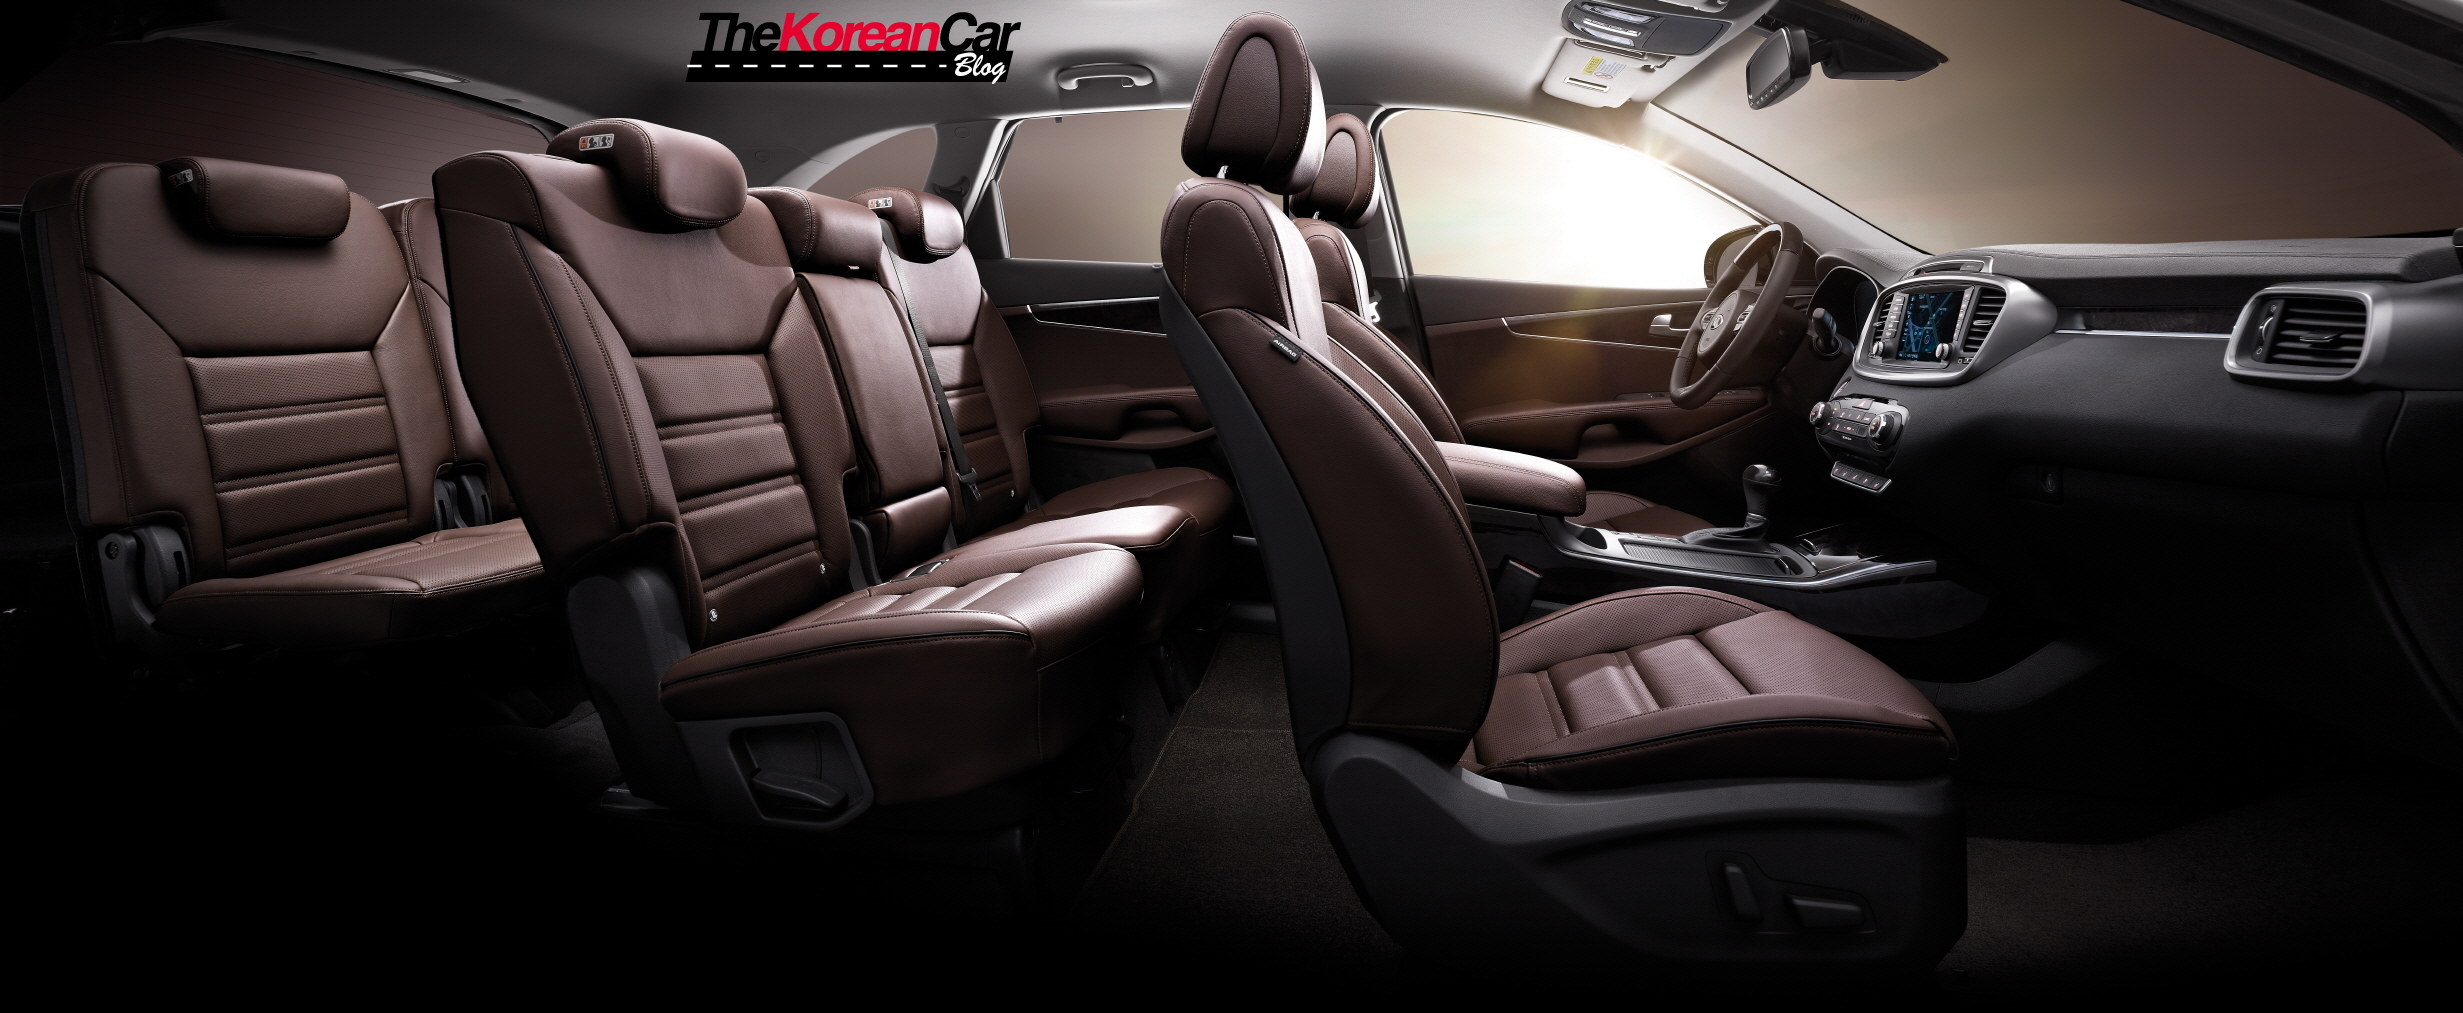 exclusive-interior-pictures-new-kia-sorento ...